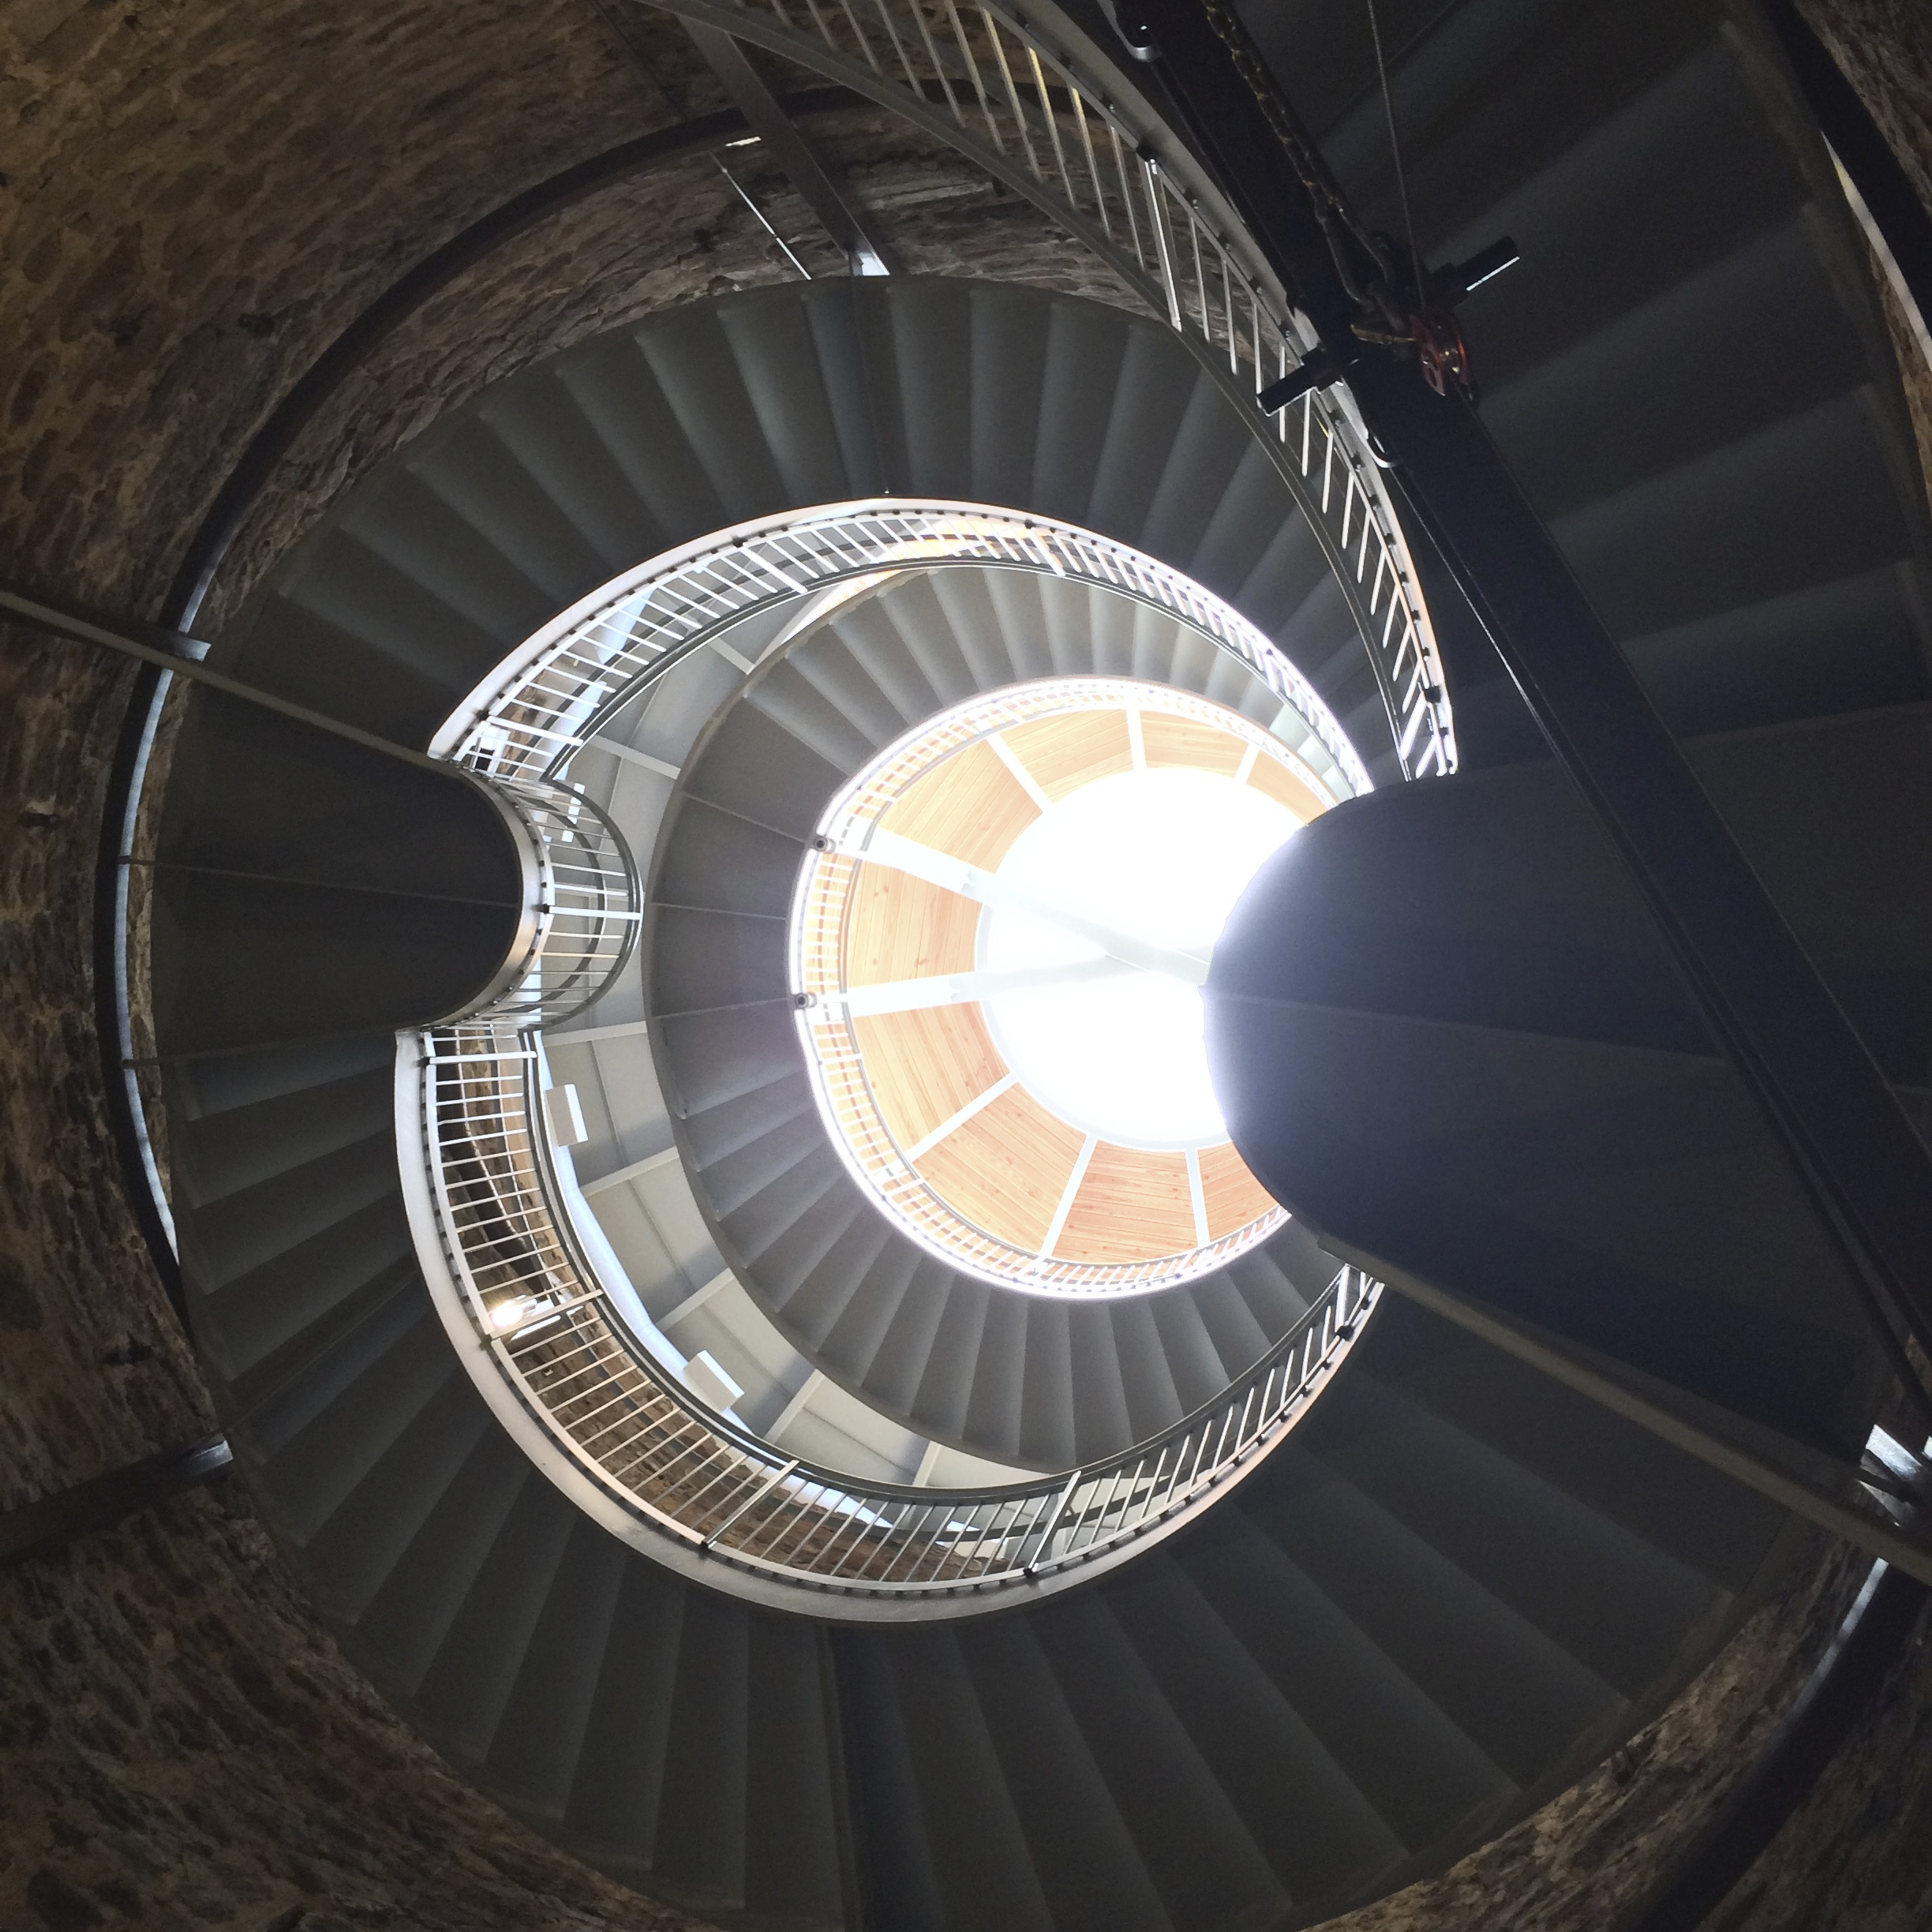 This photo was taken from the bottom of the well – as far as you can go down the spiral staircase – and then looking up. It's an absolutely beautifully designed building – and you feel the coolness envelop you as you descend, and the warmth return as you climb the staircase toward the light.